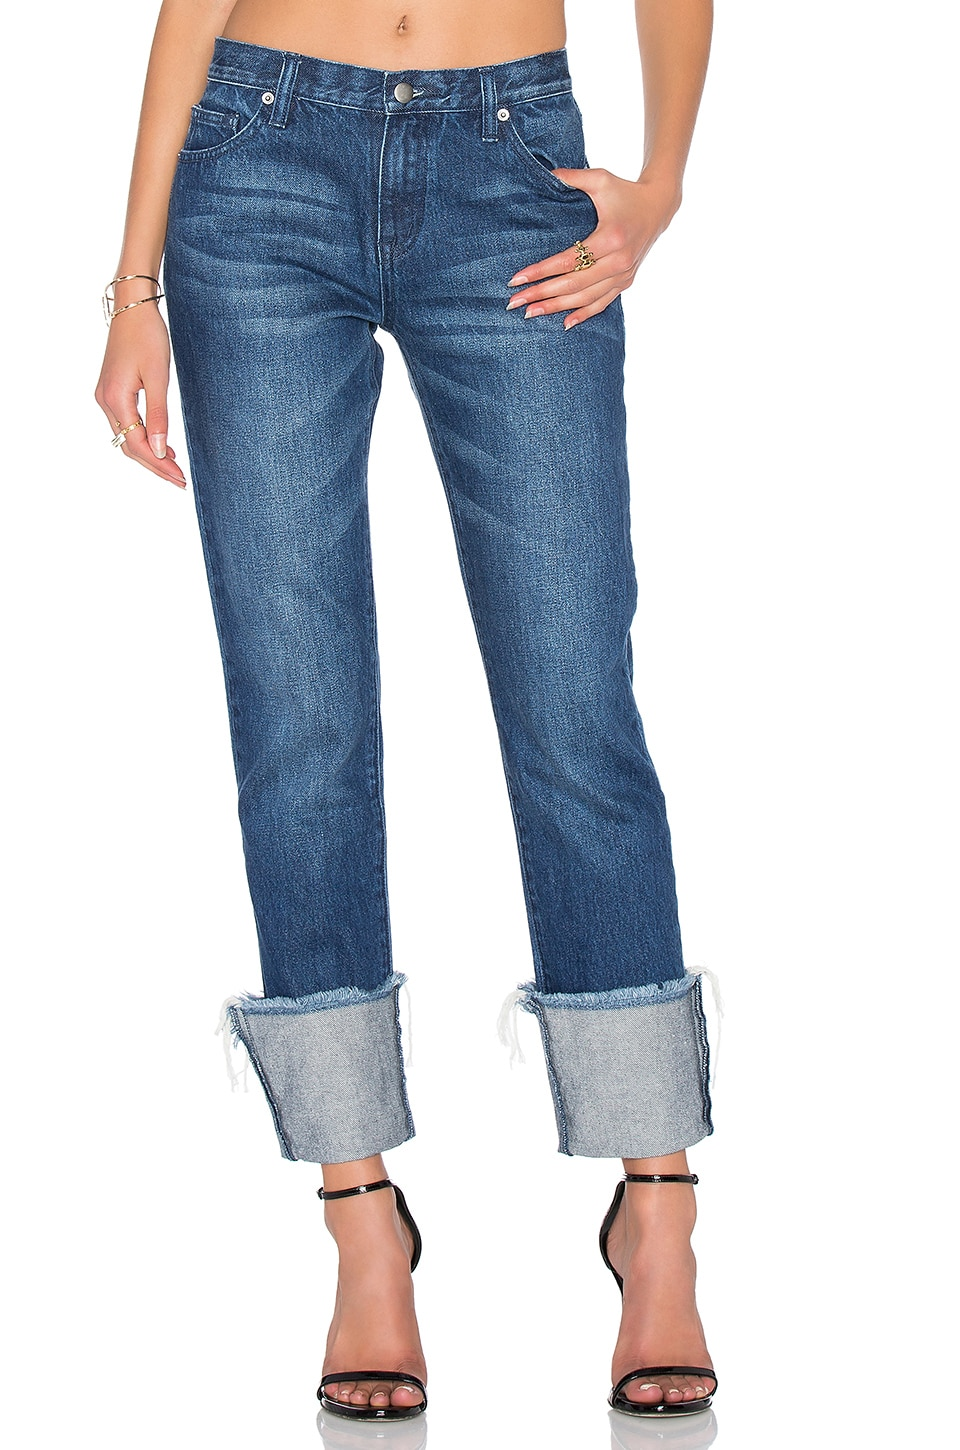 Turn Up Boyfriend Jean by EDIT